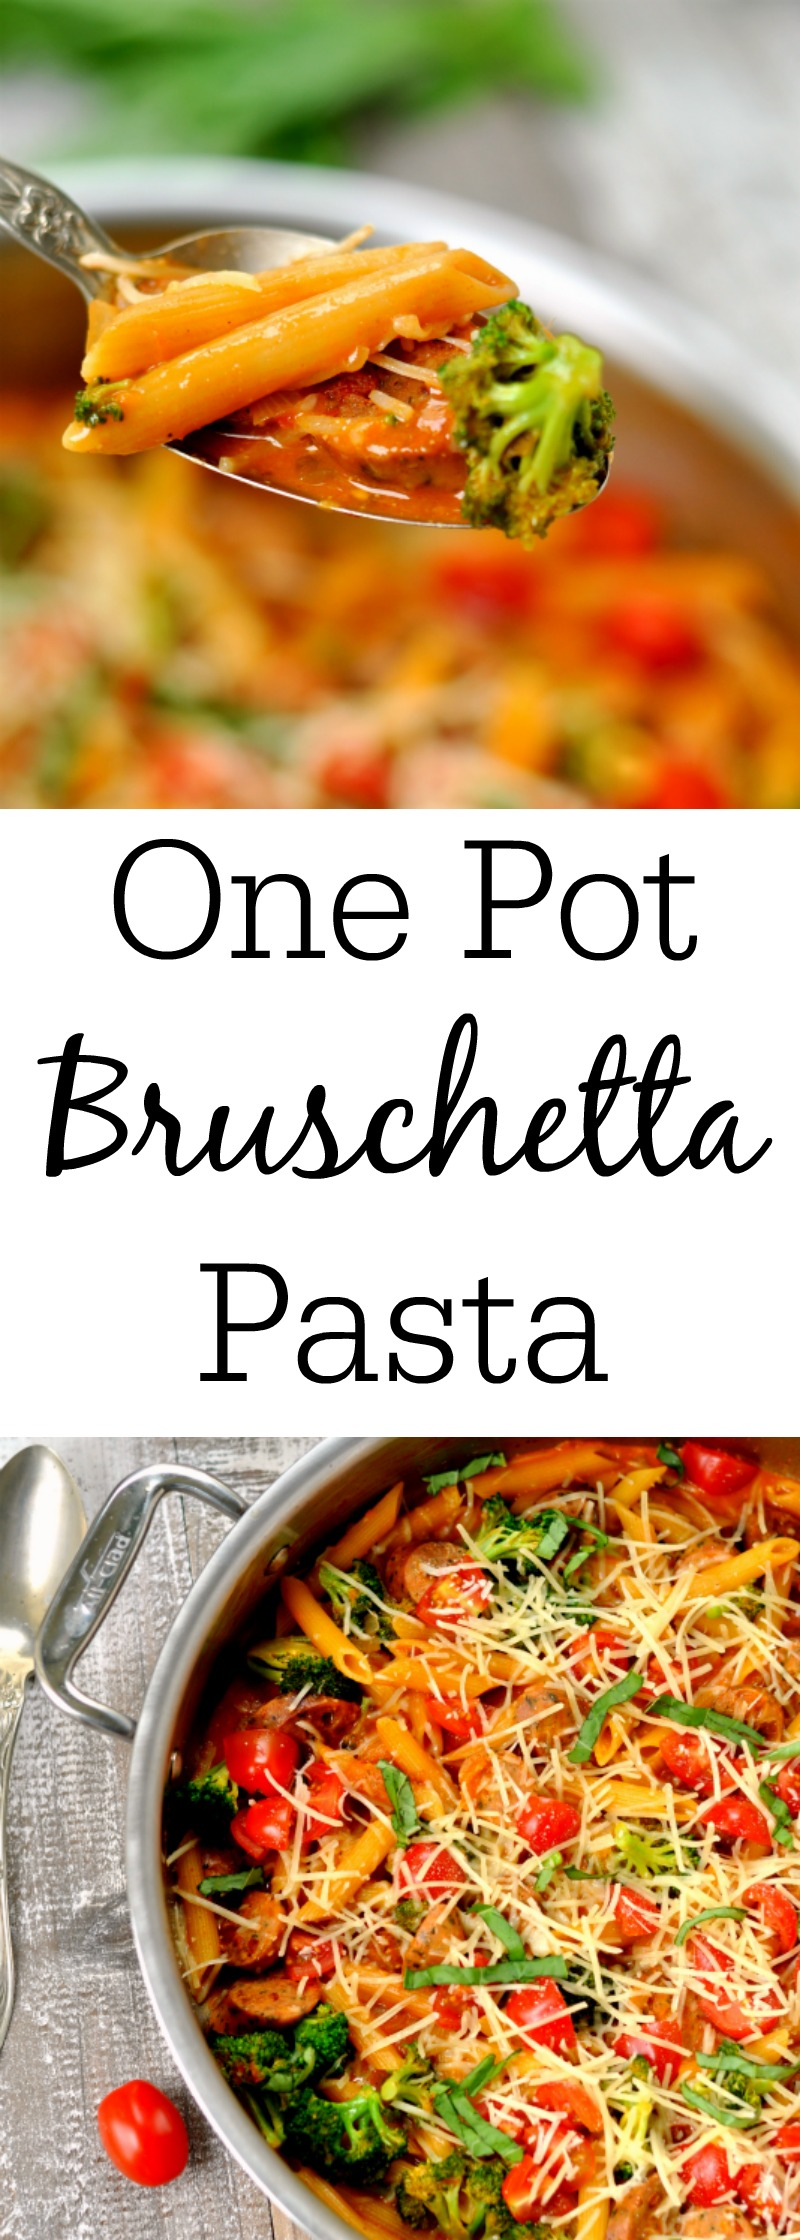 One Pot Bruschetta Pasta